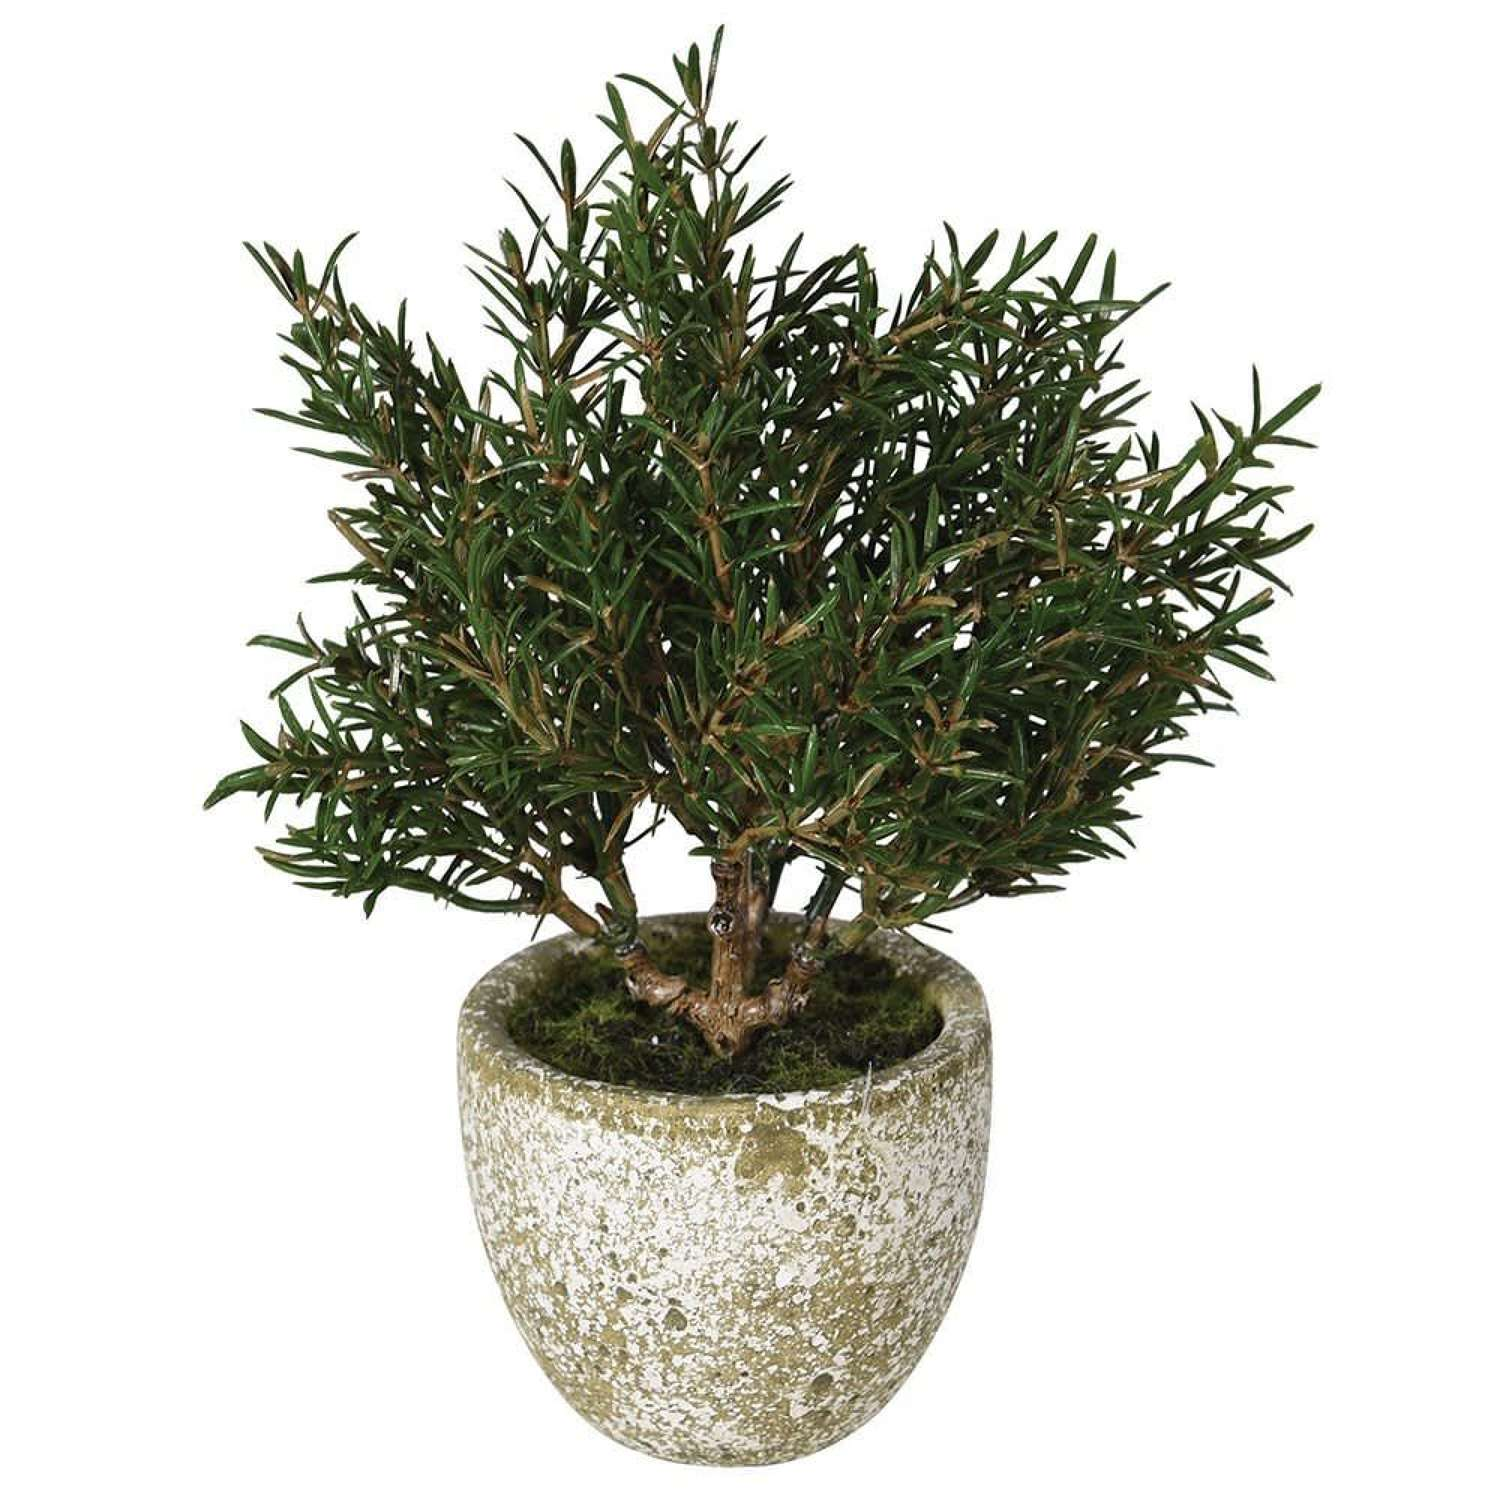 Artificial Rosemary Bush in a Clay Pot